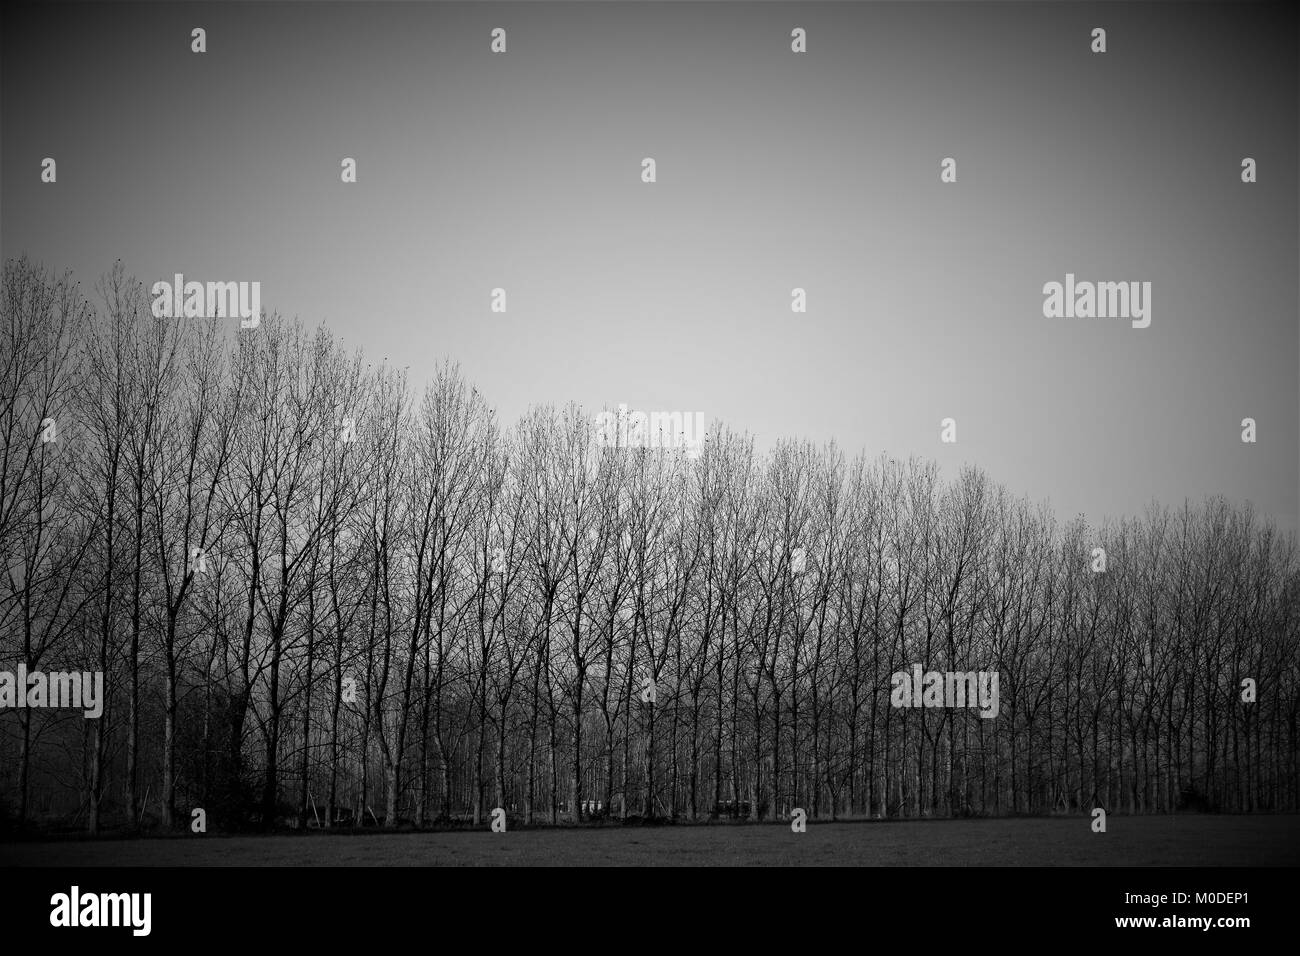 Tree line of bare branches in black and white - Stock Image